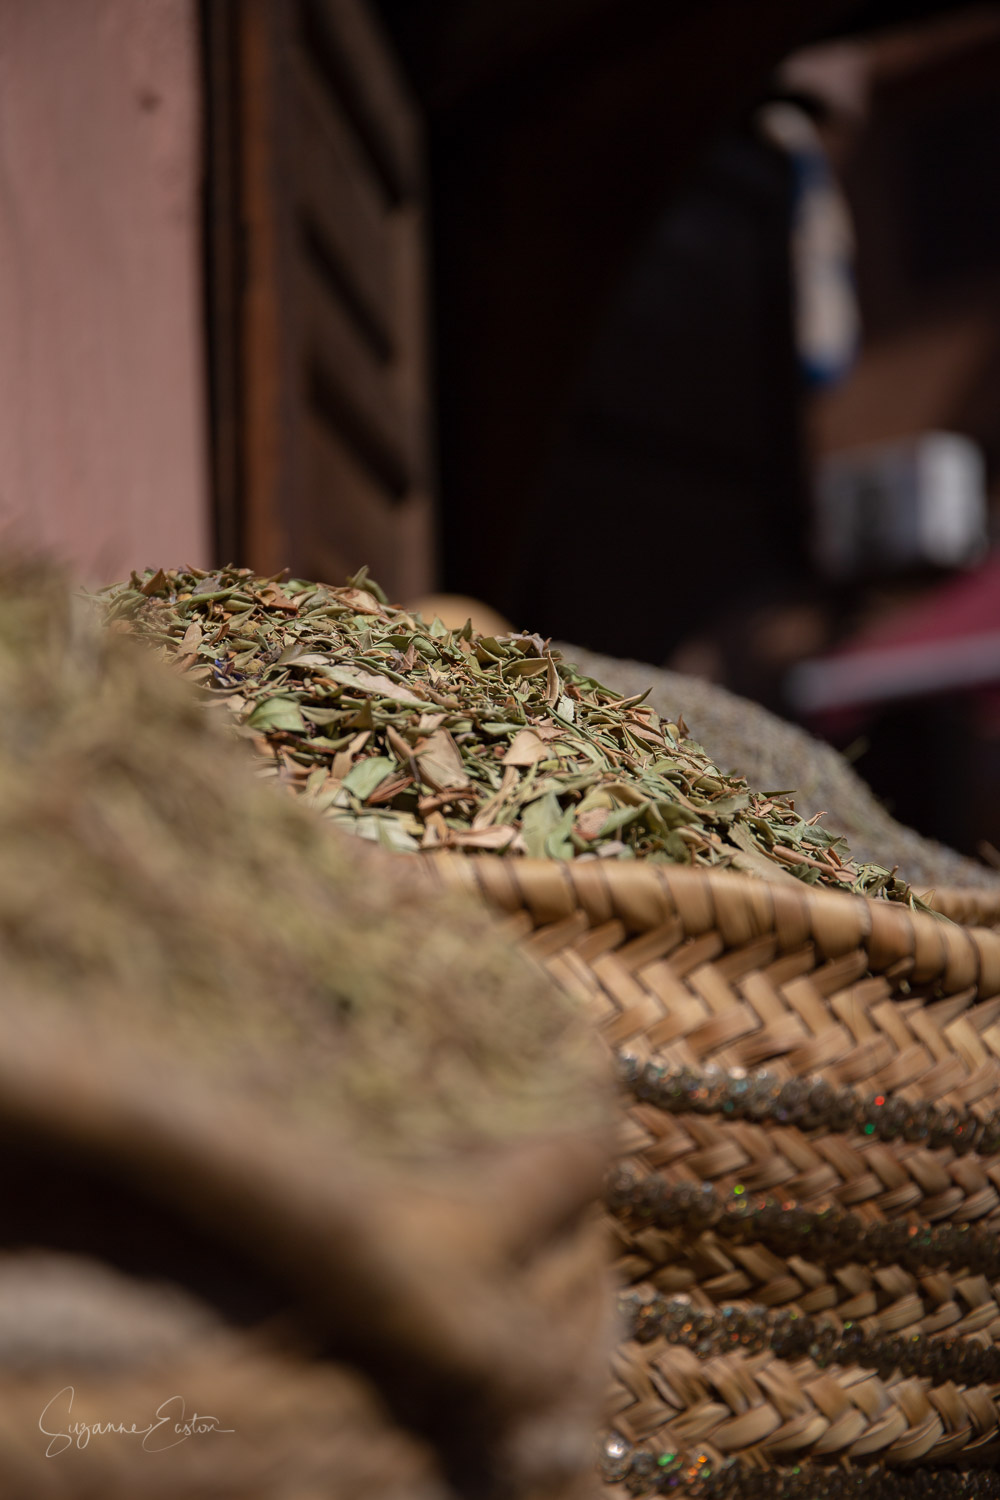 Dried herbs for sale in Marrakech